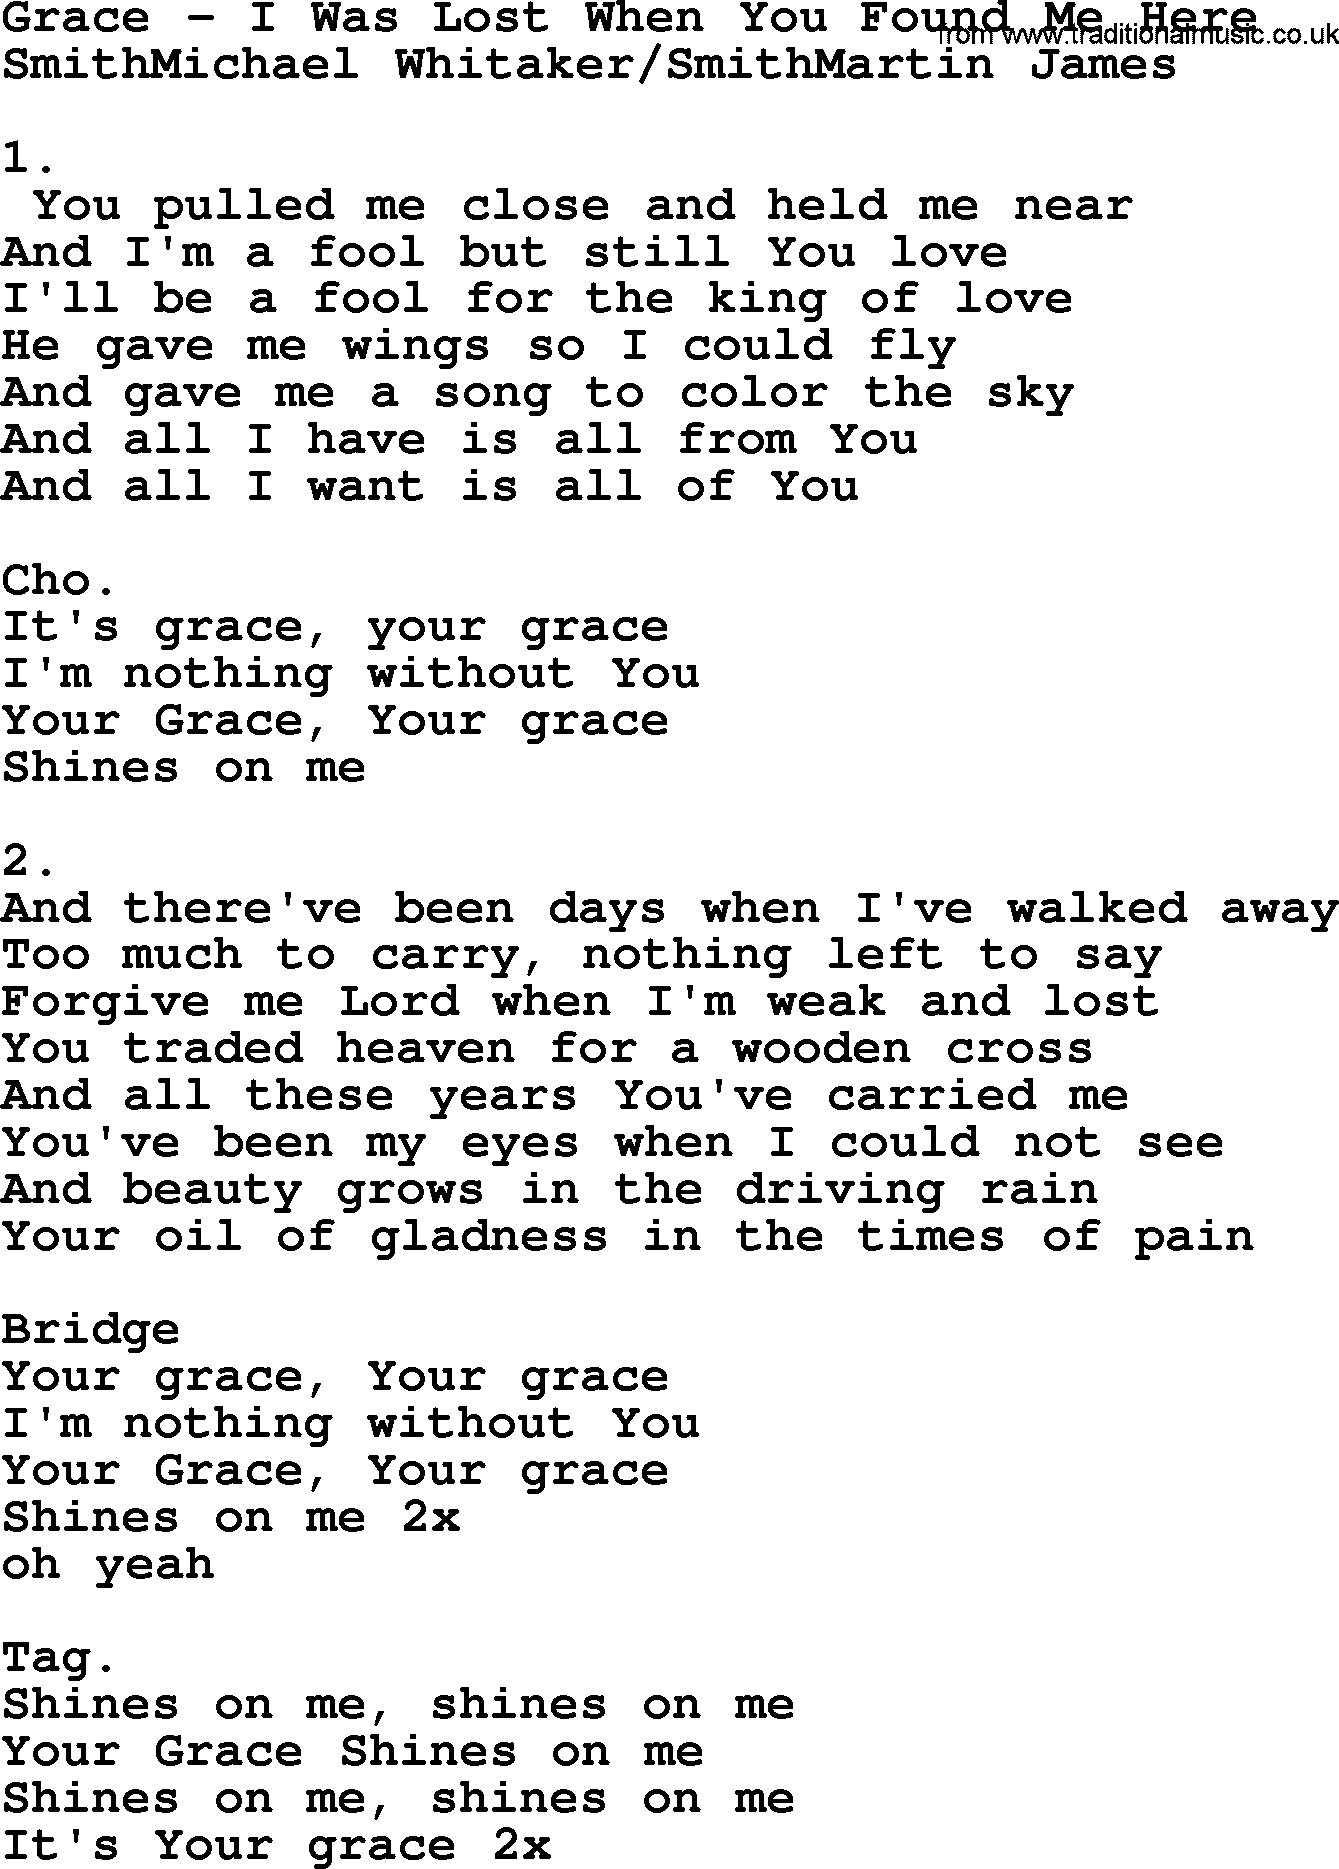 Lost with you lyrics